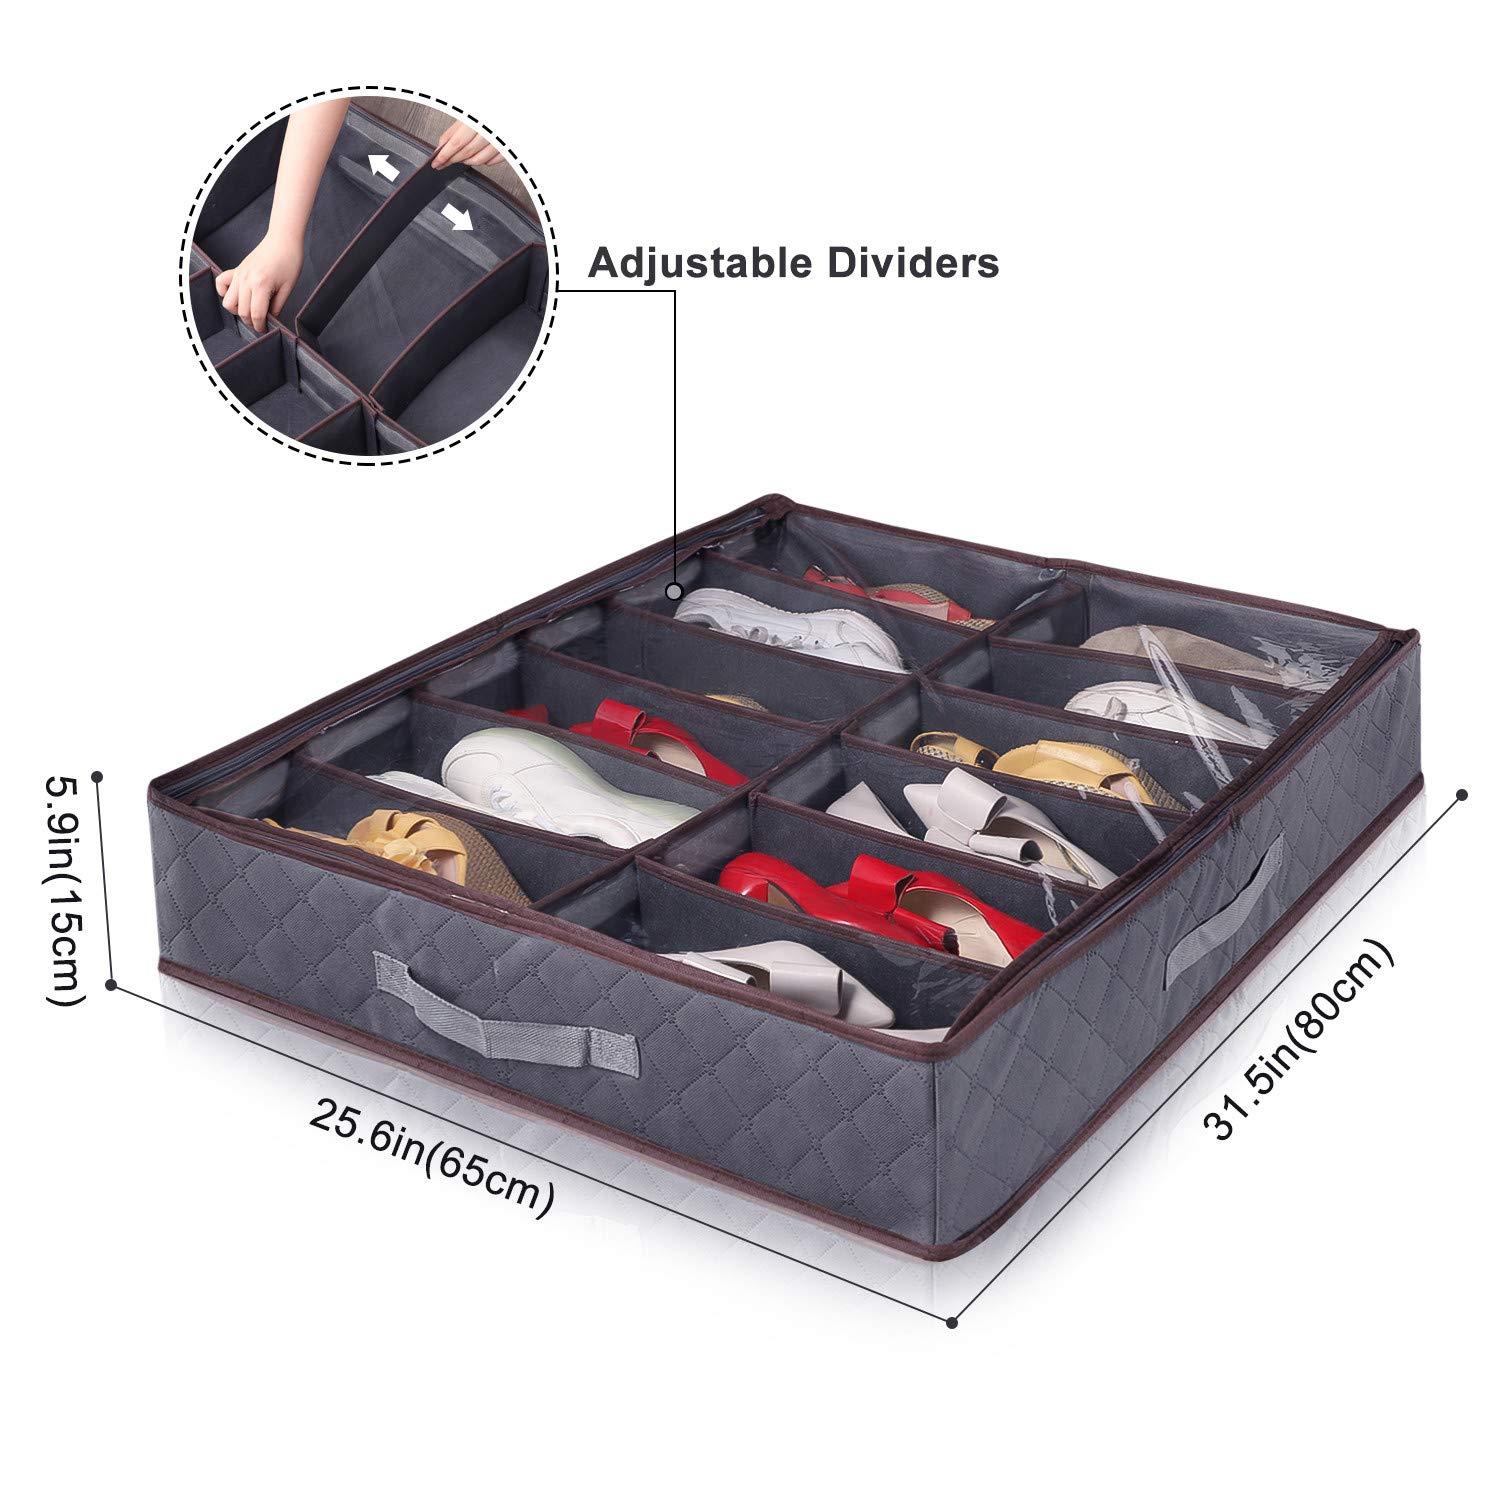 Lifewit Shoe Storage Organizer with Adjustable Dividers